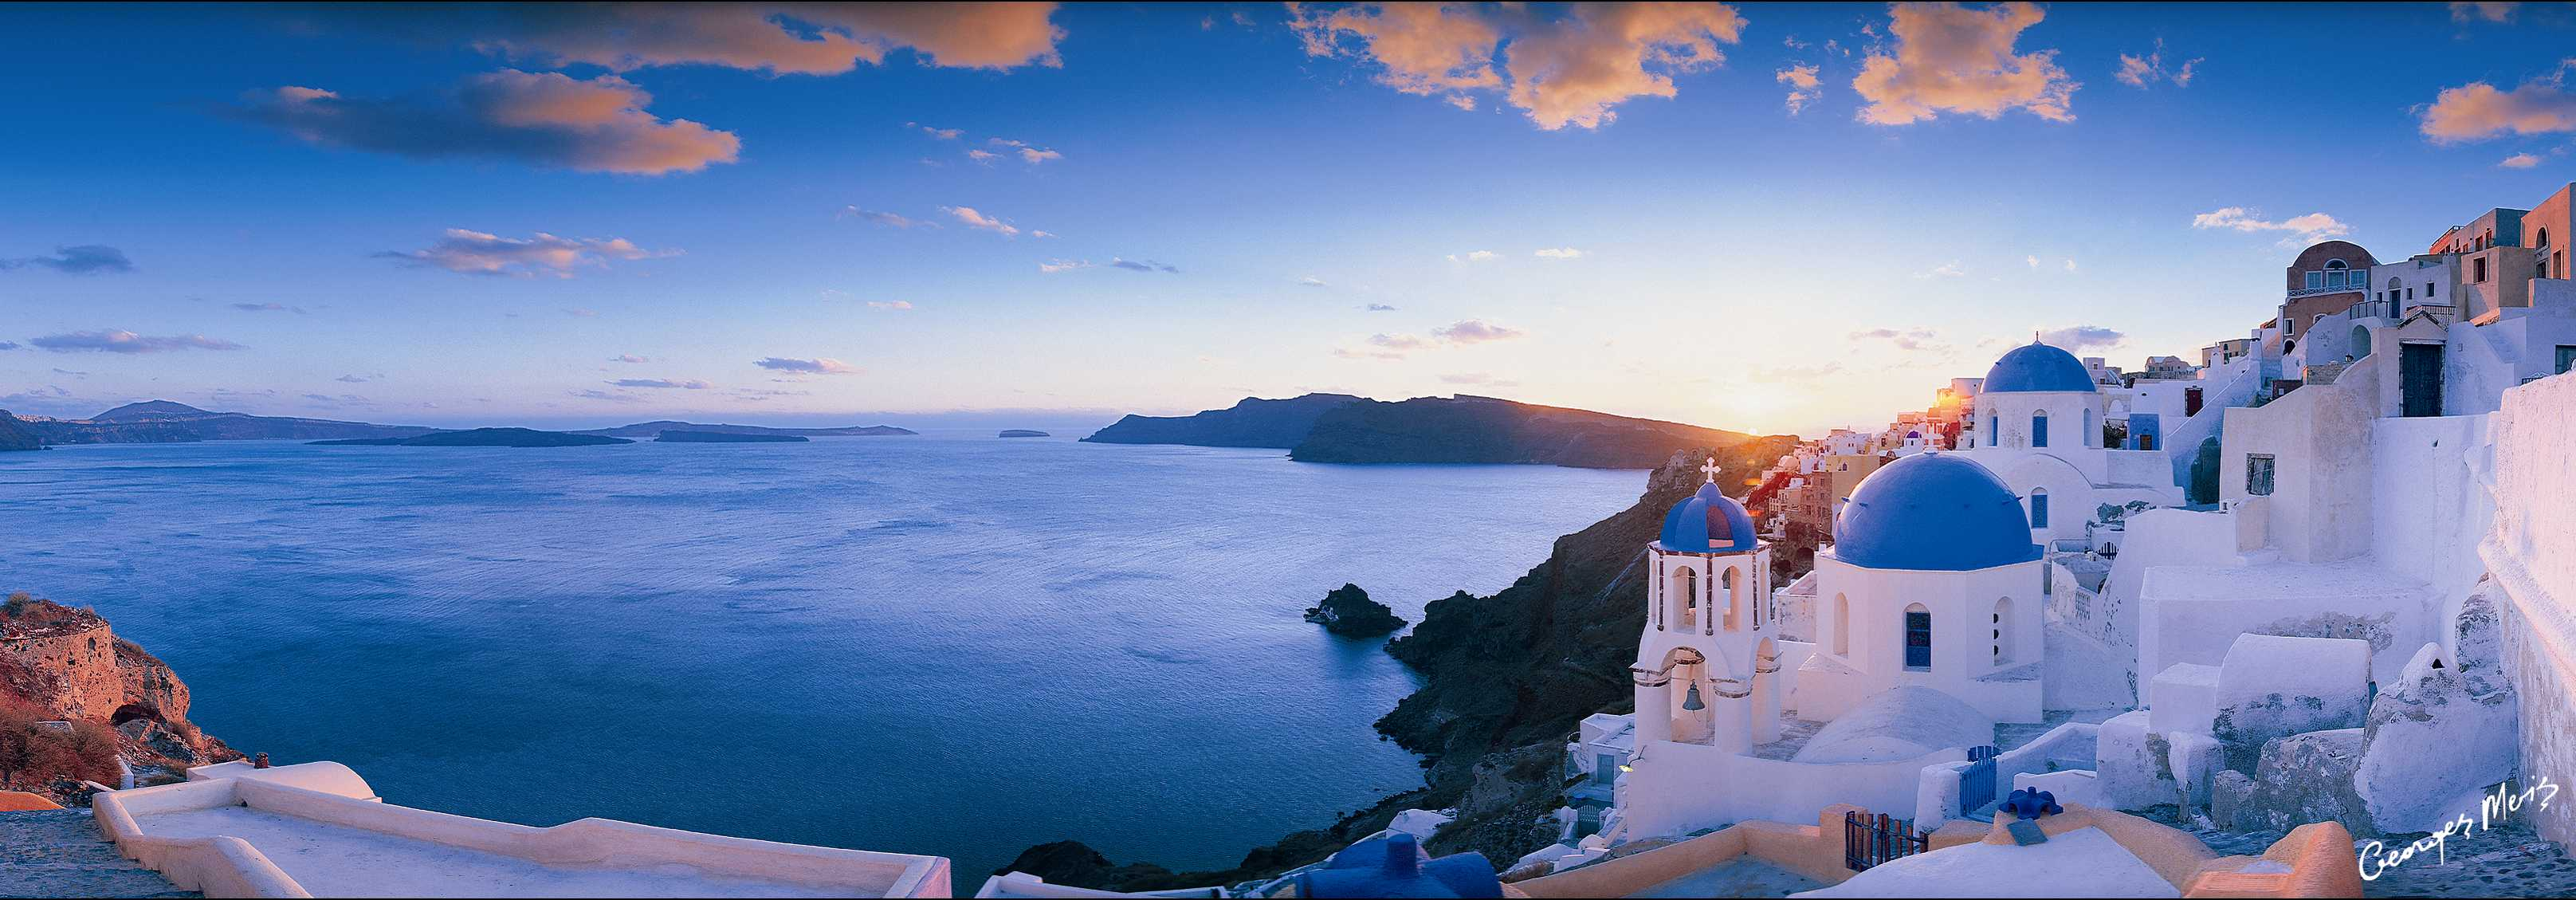 santorini europe pre wedding photoshoot dreamwedding boutique singapore bridal package and wedding gown rental 1